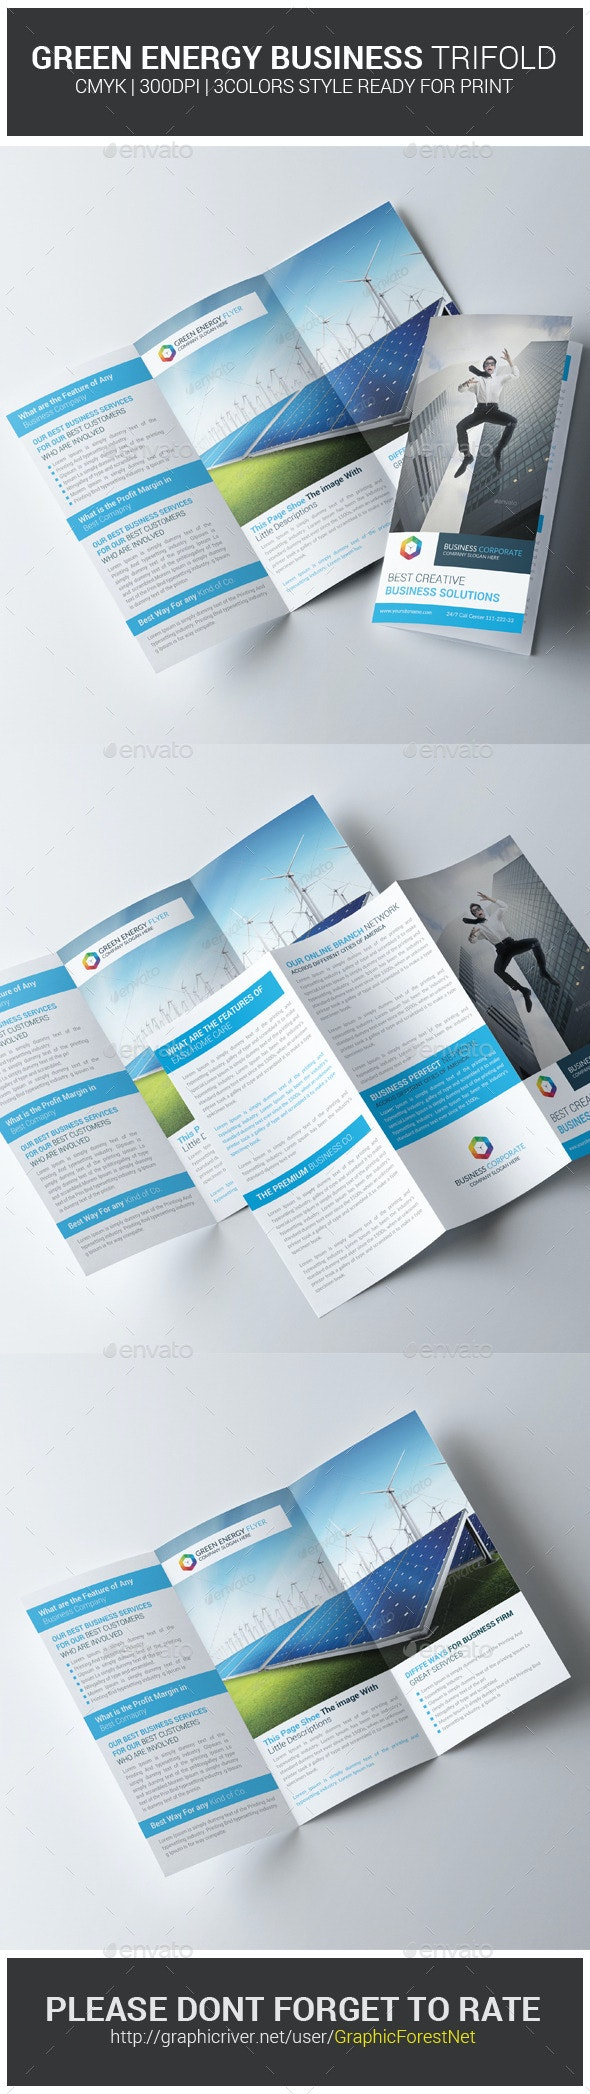 Green Energy Business Trifold Brochures - Corporate Brochures